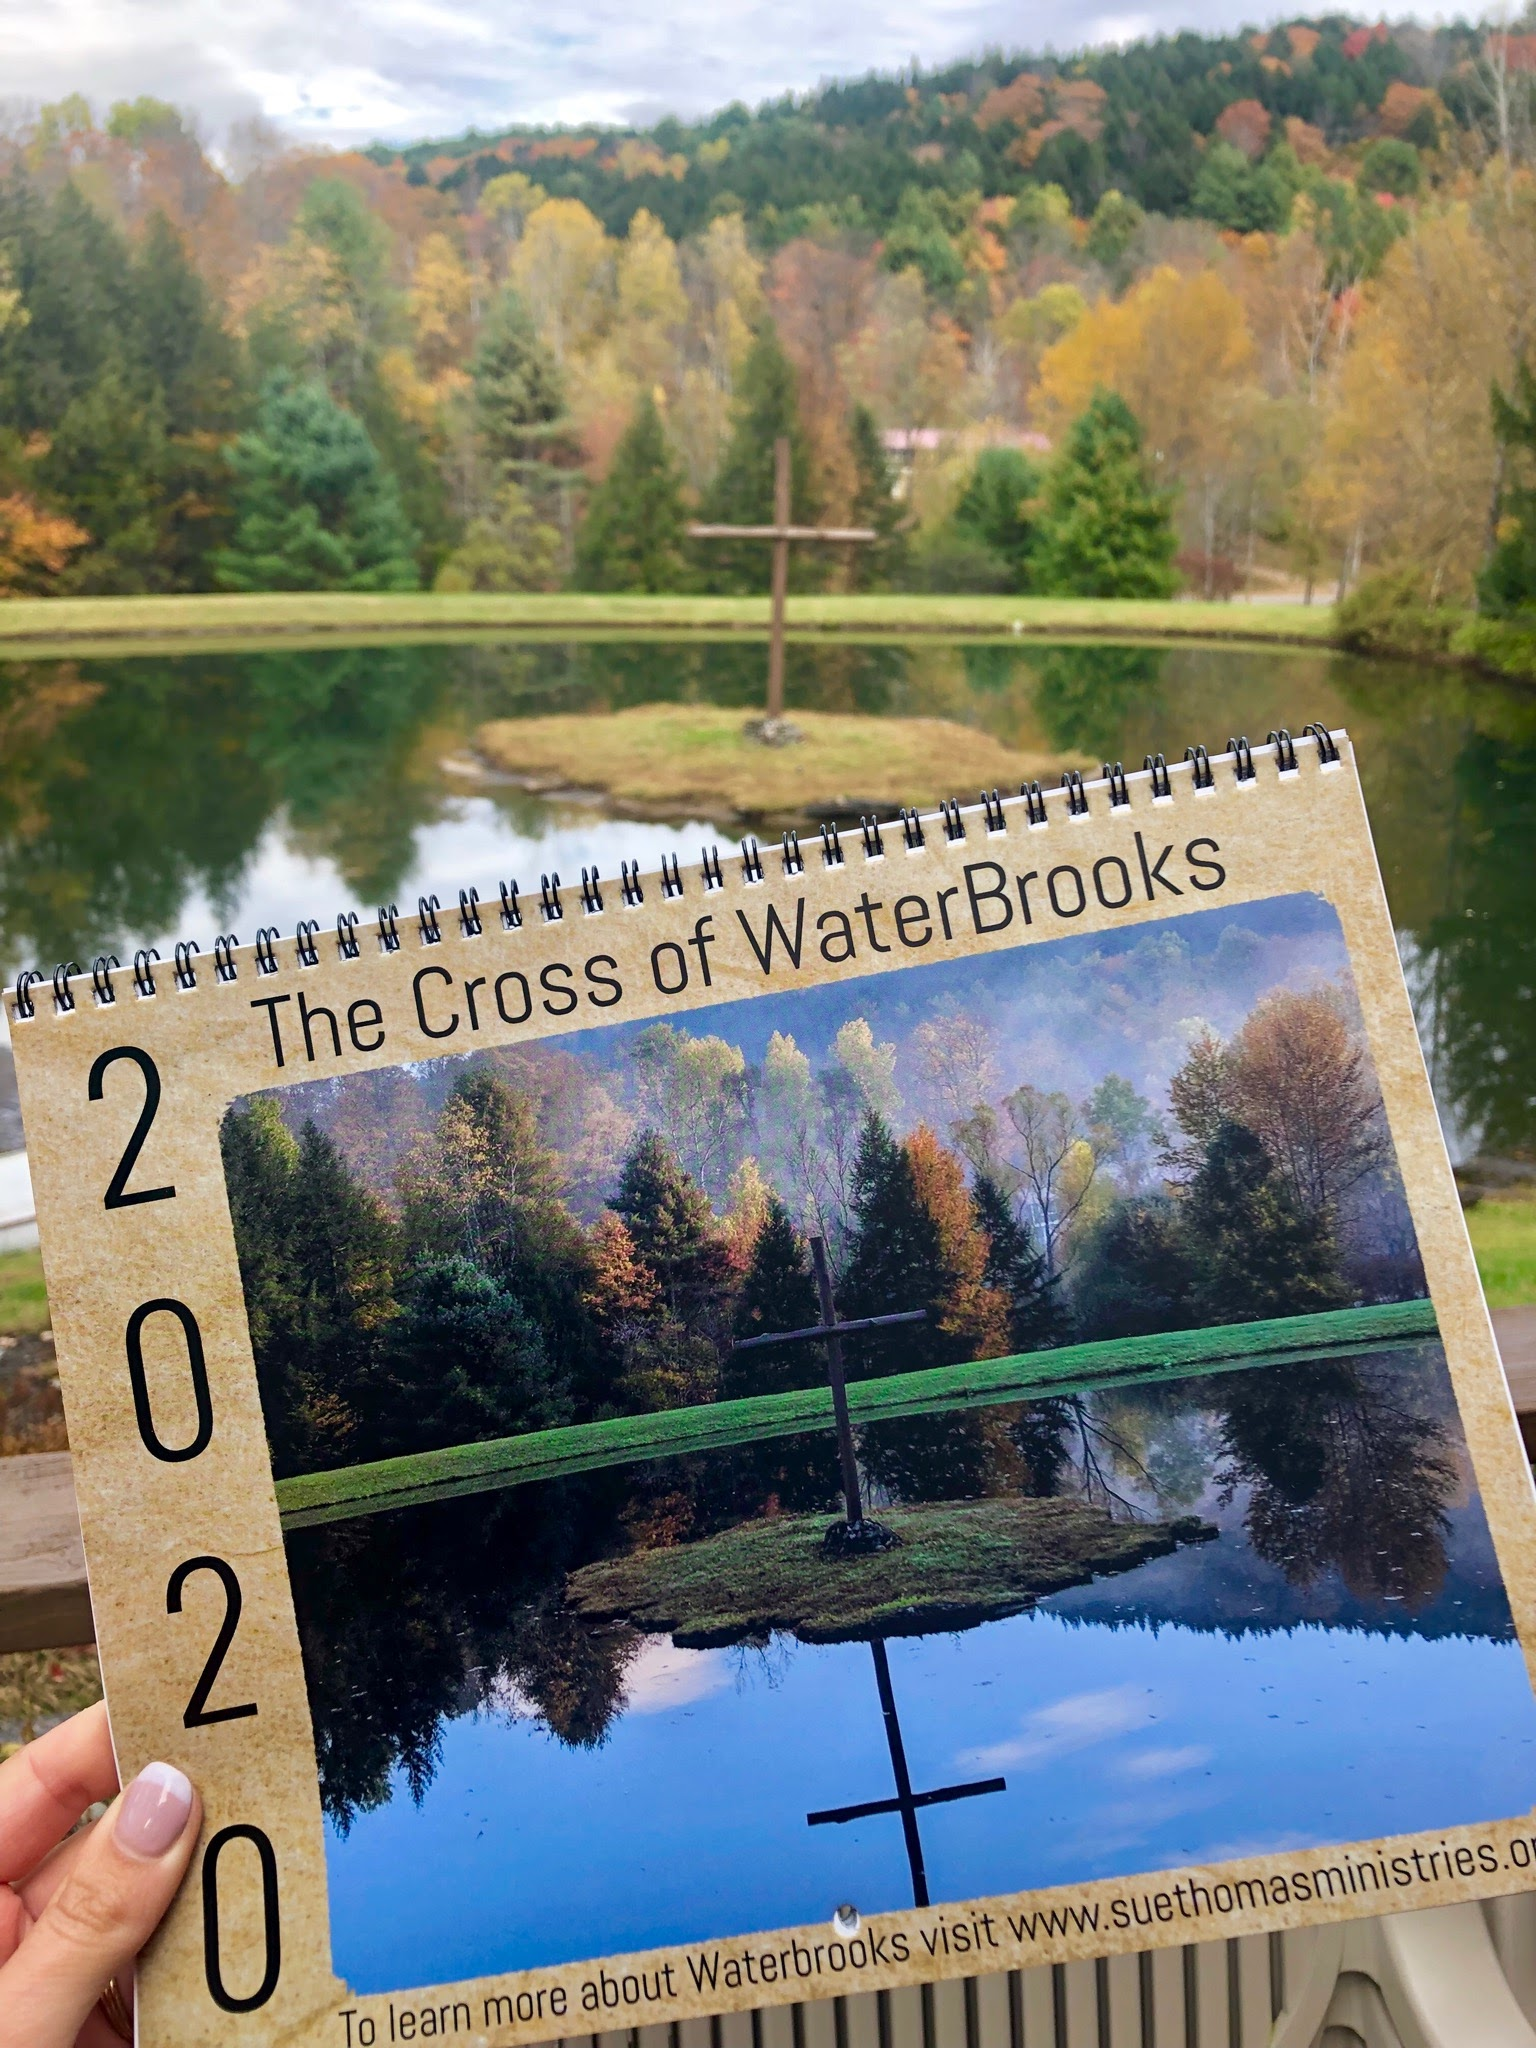 Our 2020 Calendar, the Cross of WaterBrooks